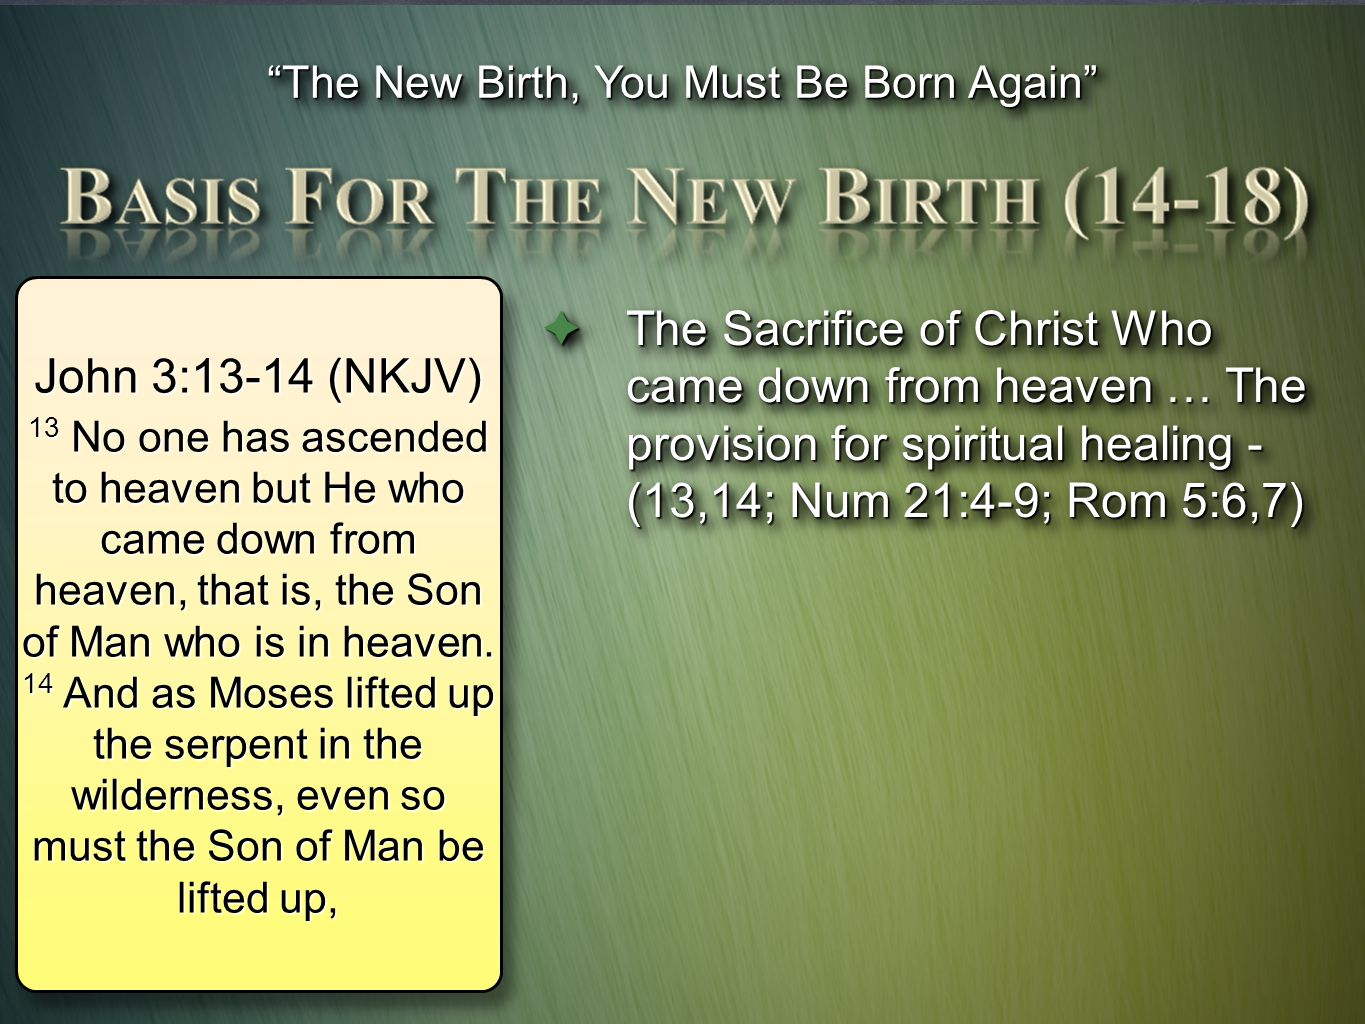 The New Birth, You Must Be Born Again